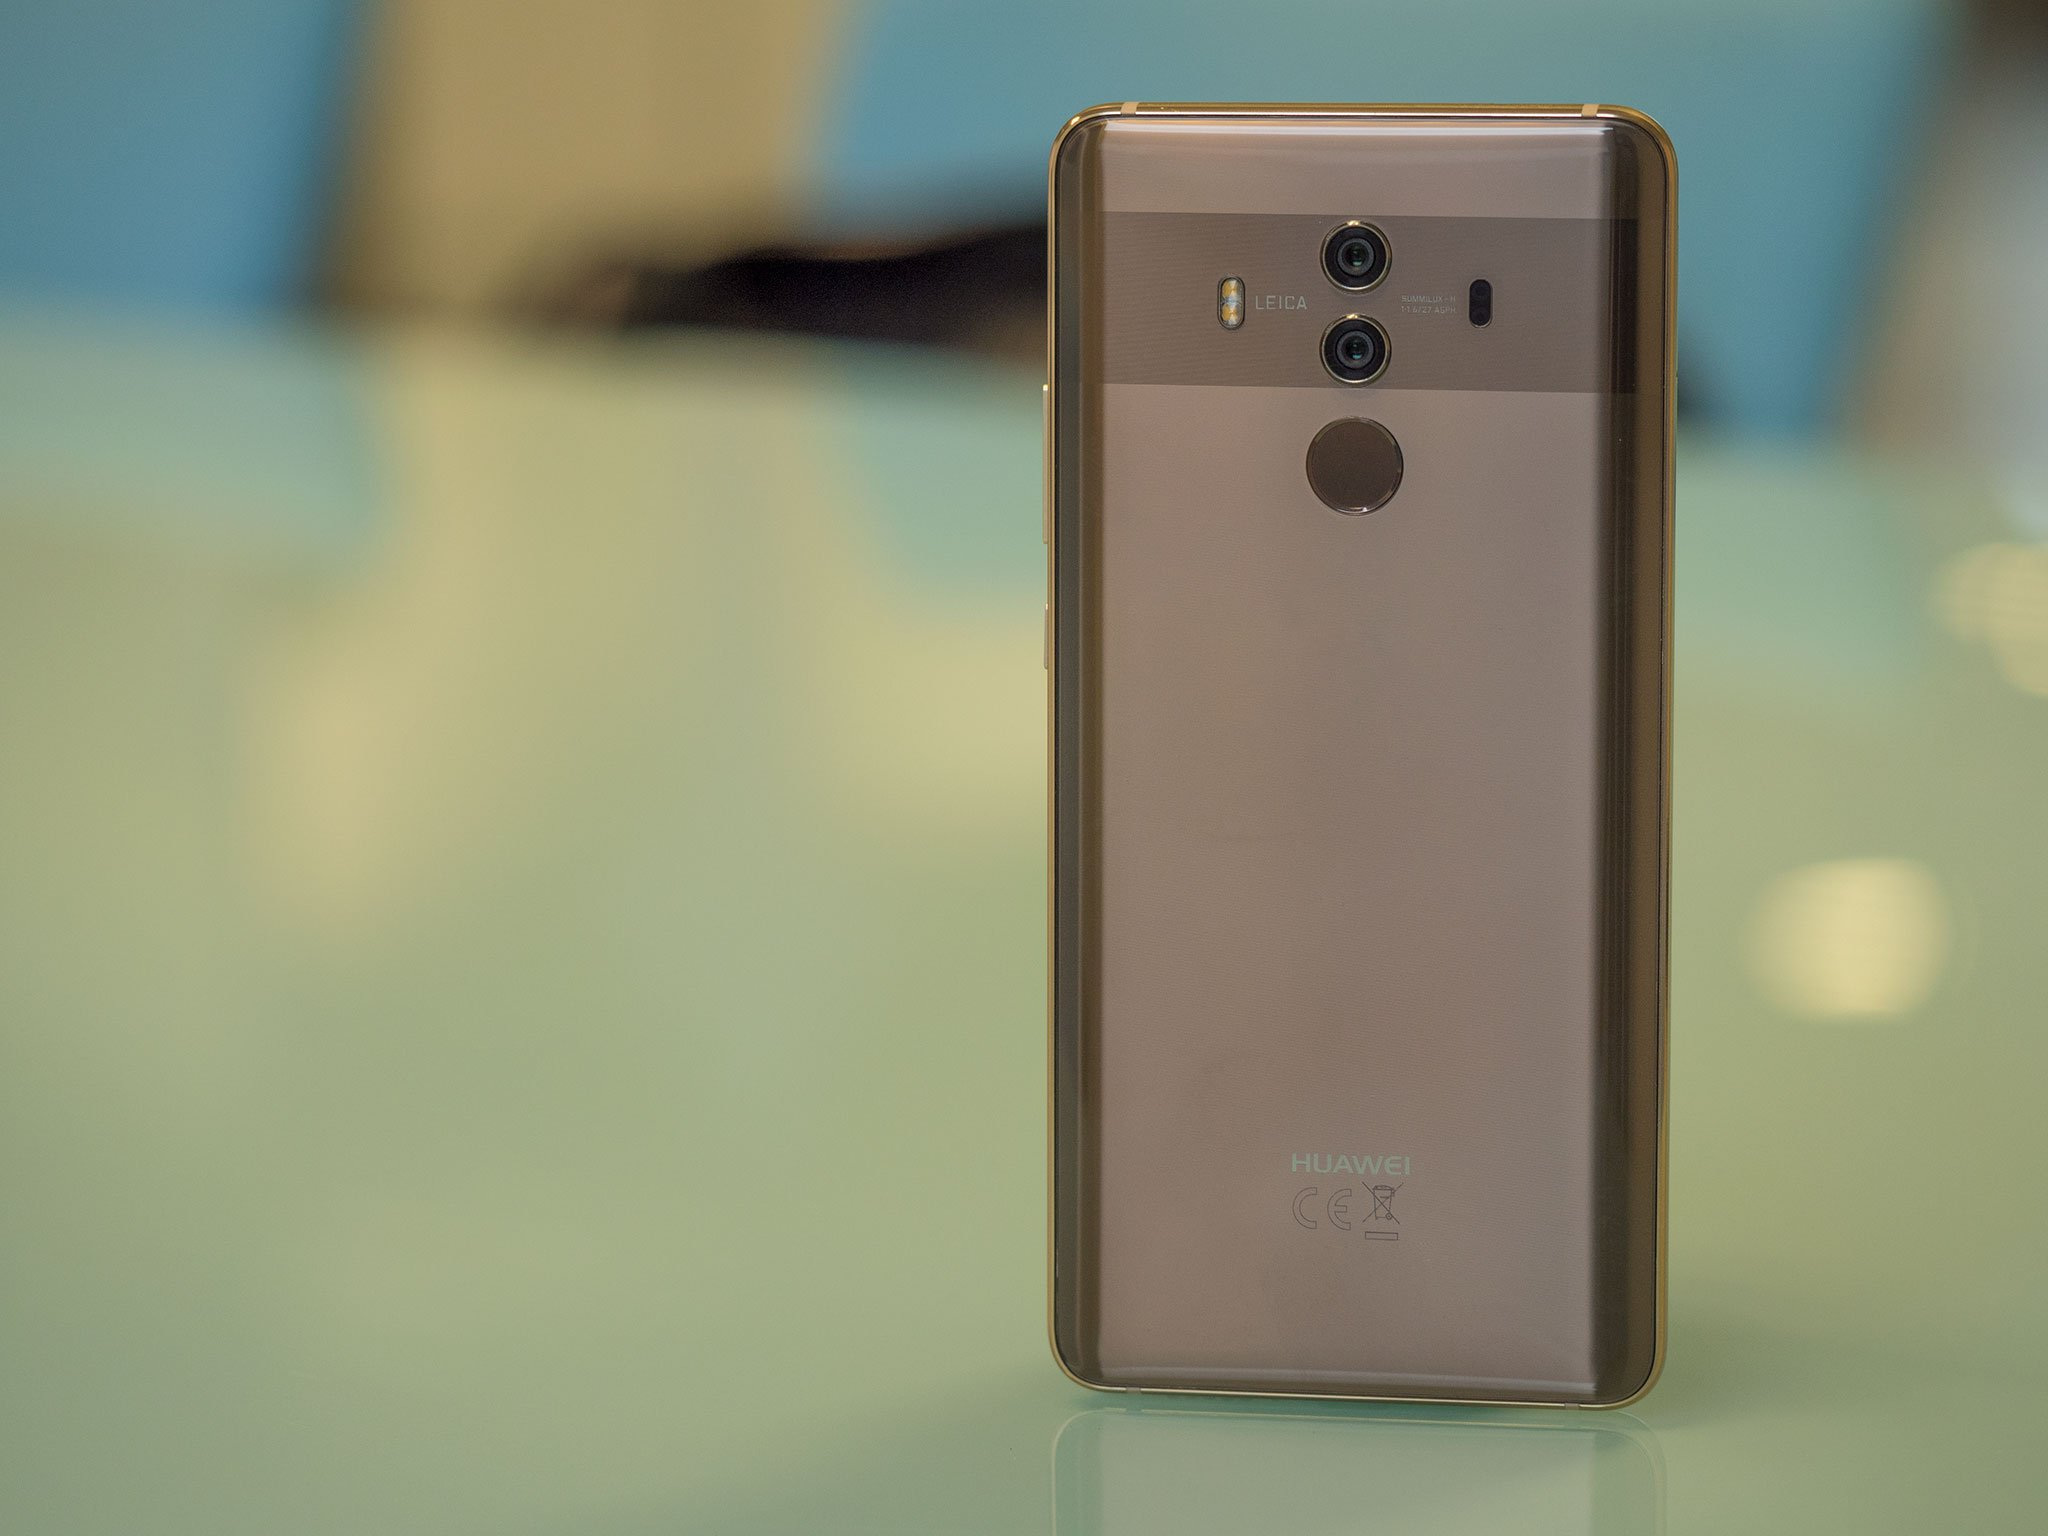 how to find active applications icon on huawei mate 8